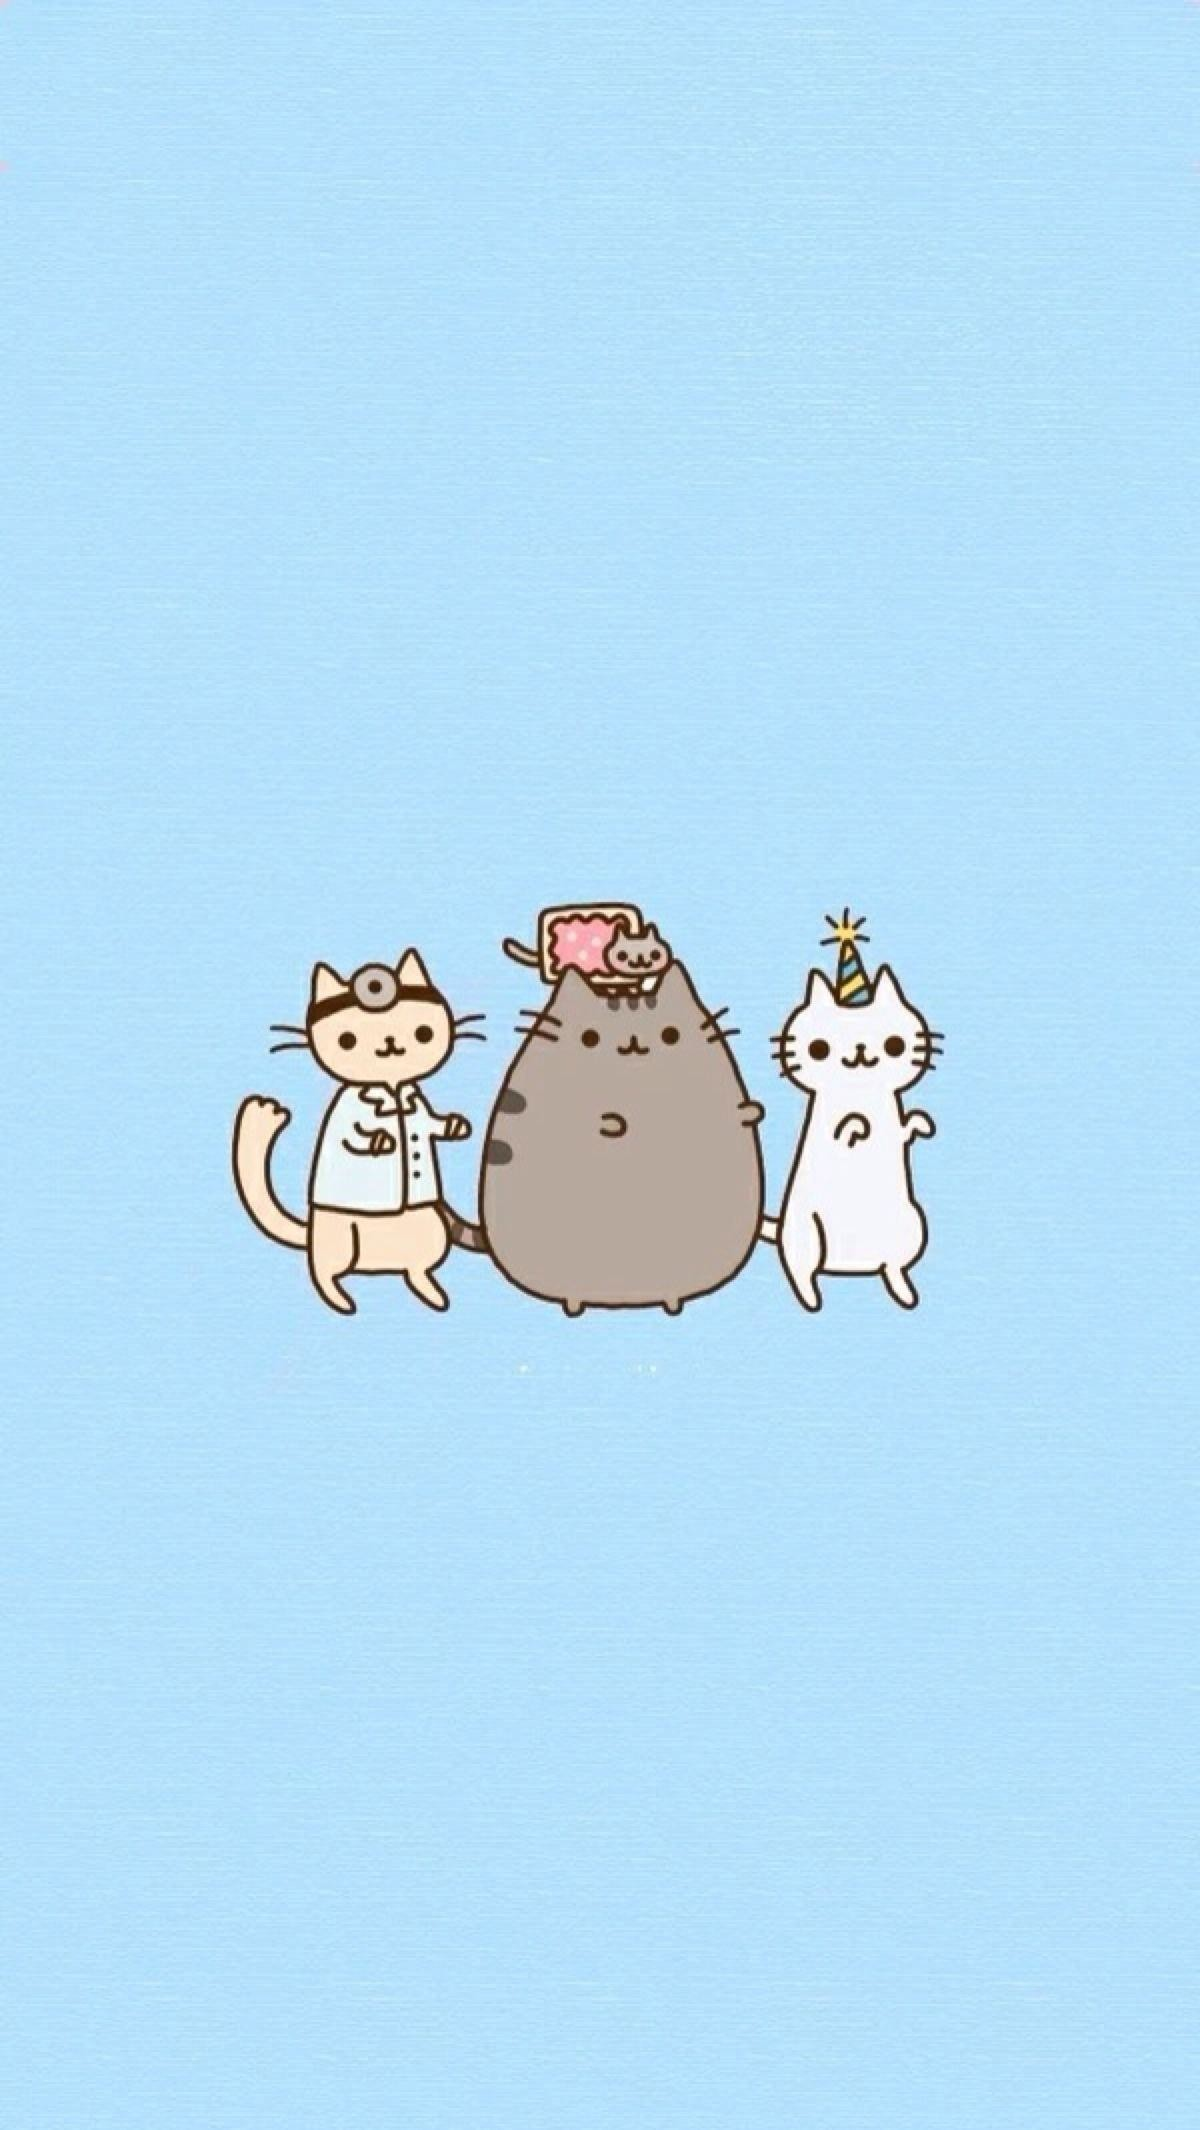 Pusheen The Cat Background | Funny Cat & Dog Pictures